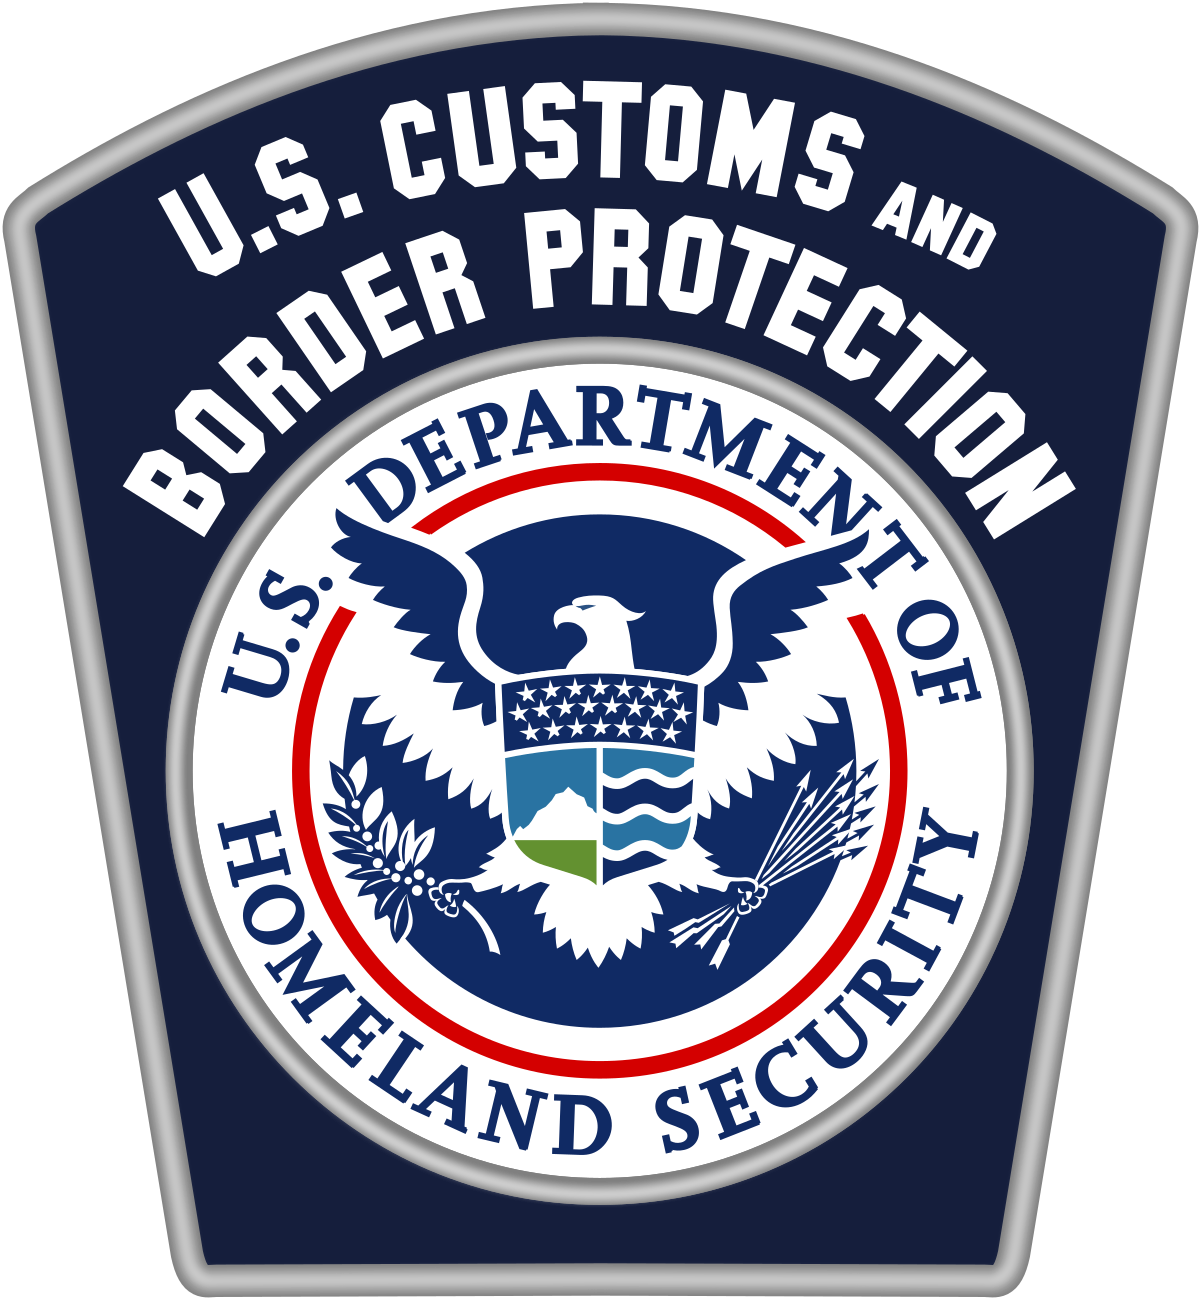 U.S. Customs and Border Protection.